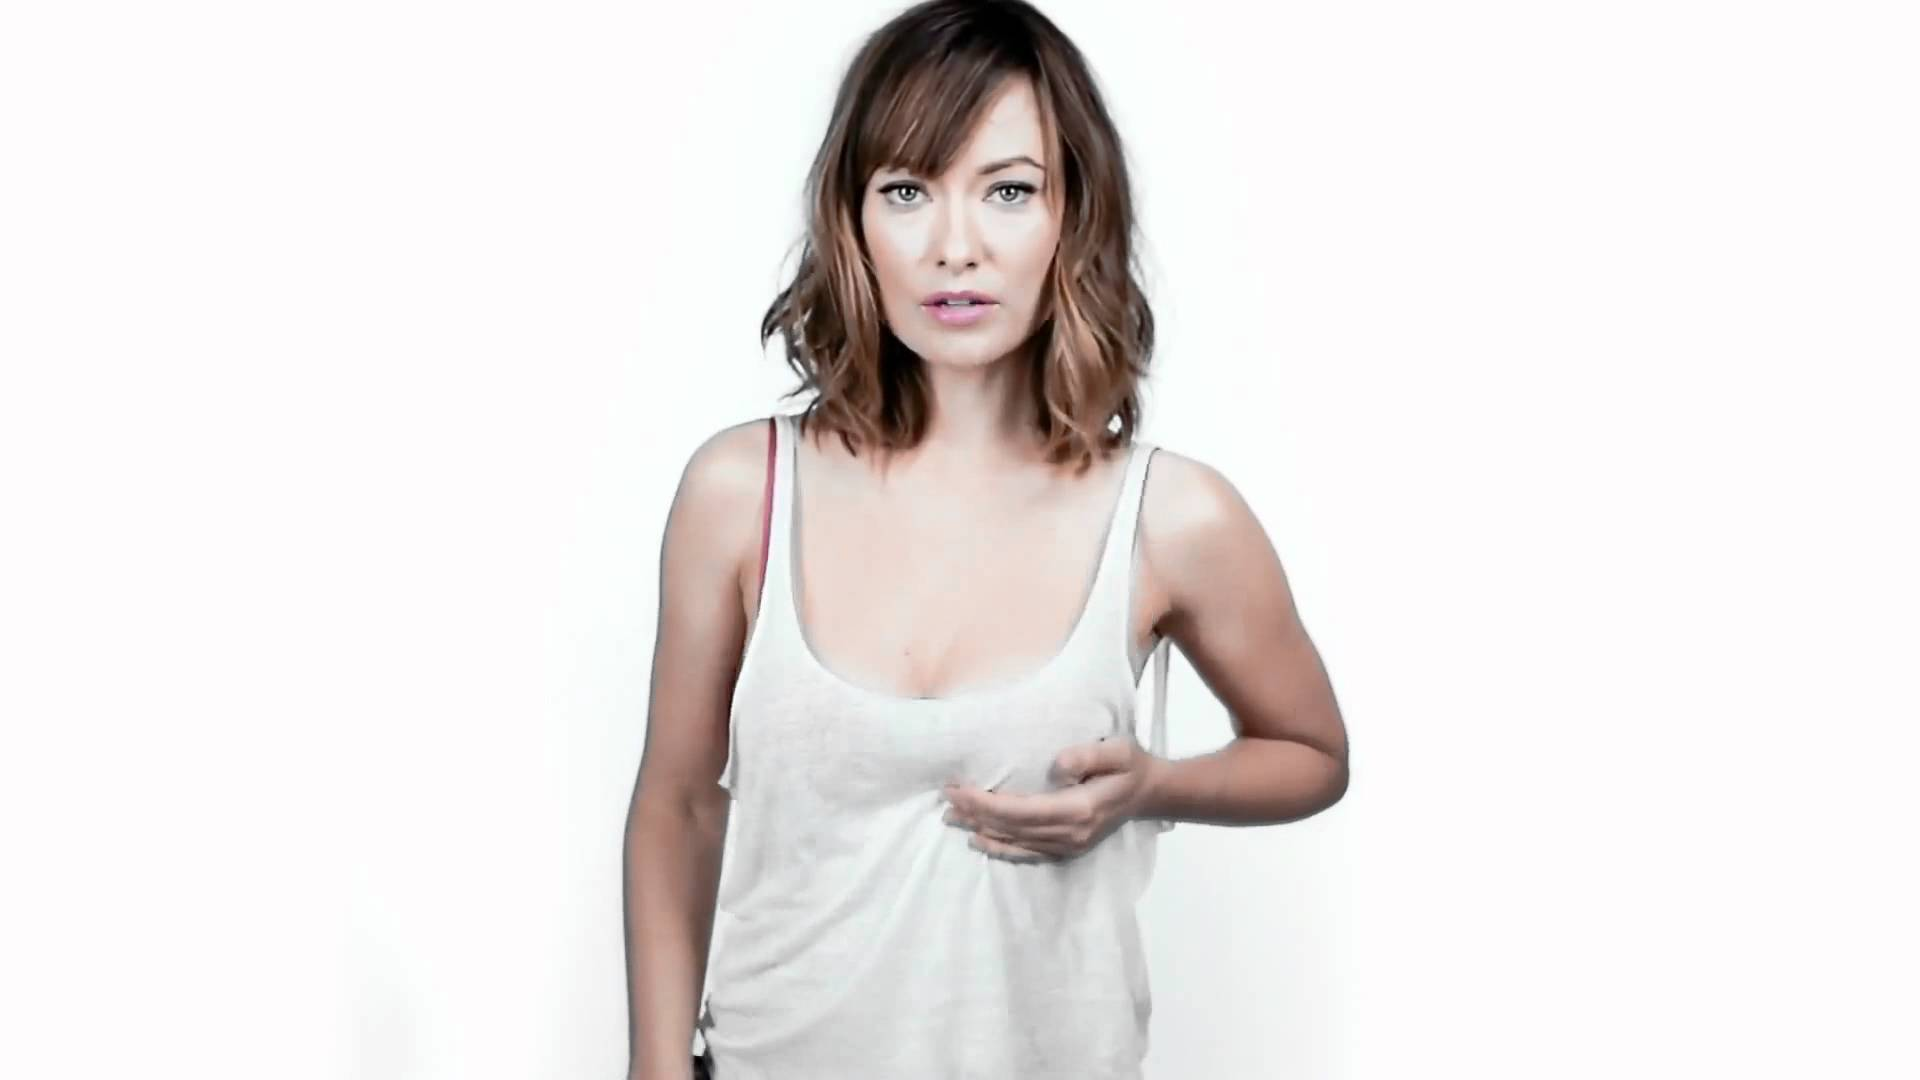 55 Of The Hottest Olivia Wilde Pictures Ever